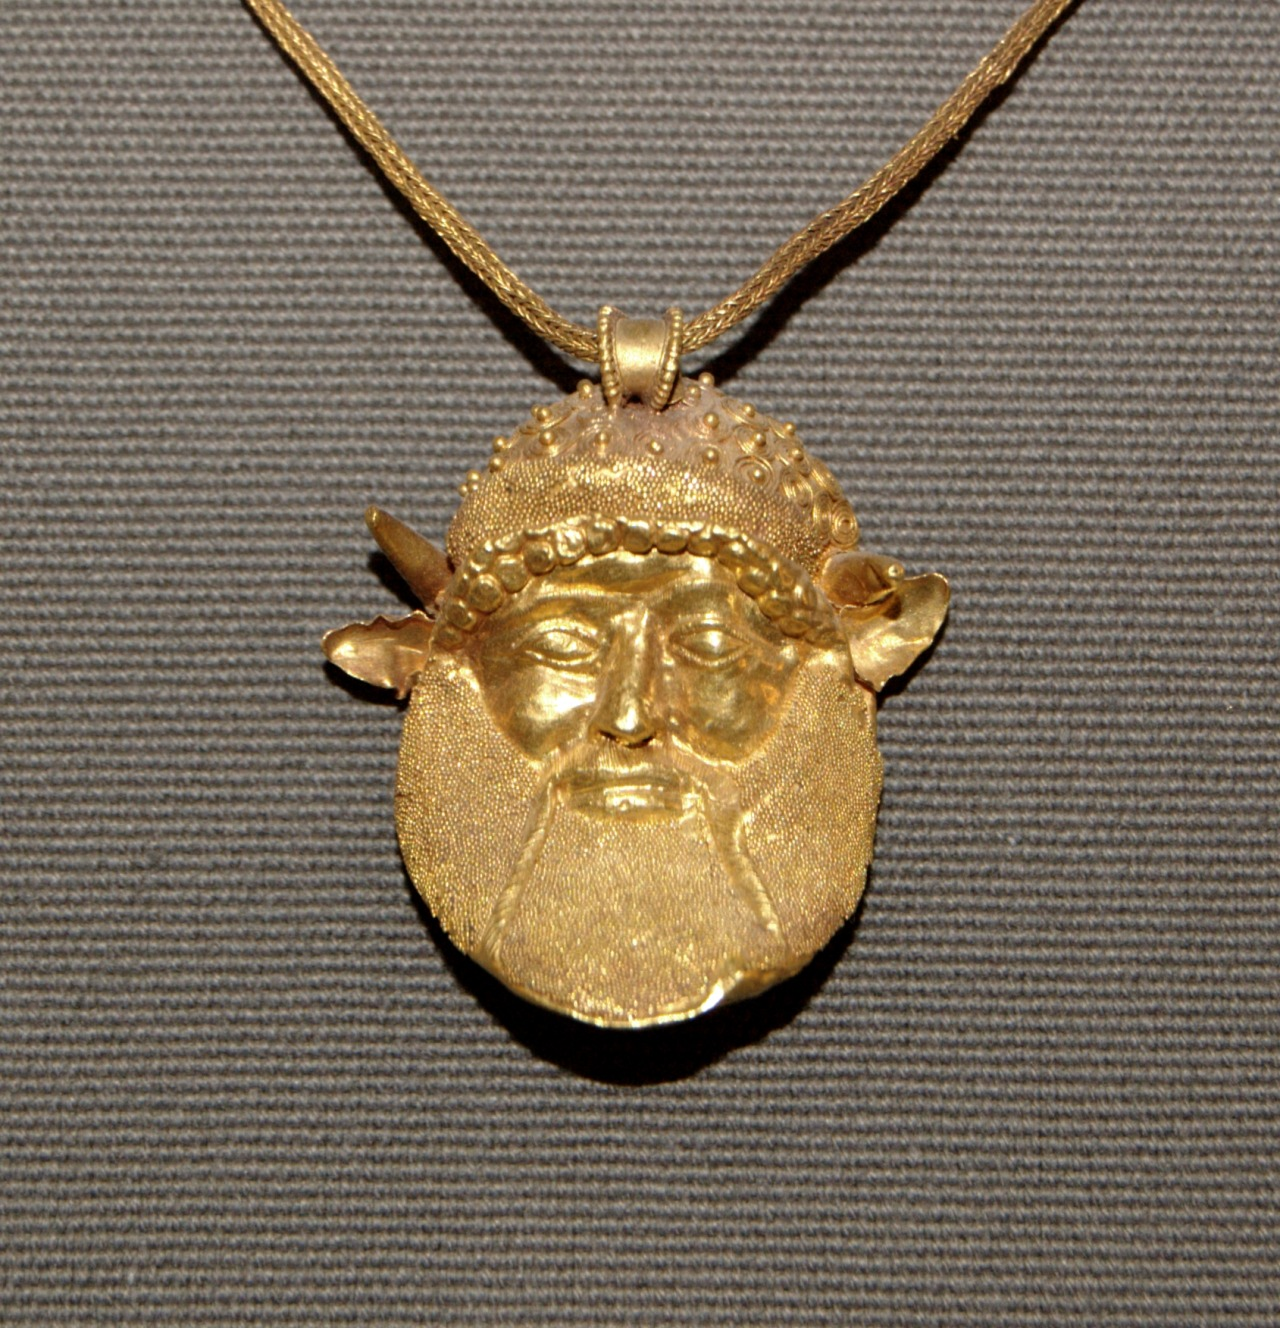 Pendant with the head of the river god Achelous, Etruscan. Courtesy & currently located at the Louvre, France:  This gold necklace, from the early 5th century BC, is a splendid example of the imaginative decoration and virtuoso techniques used by Etruscan goldsmiths of the Archaic period. The repoussé pendant, with details in graining and filigree, represents the river god Achelous, identified by his extensive beard and bull-like horns. His image was thought to have protective powers. A masterpiece of the Campana collection, the pendant inspired a number of 19th-century copies.  Photo taken by Bibi Saint-Pol